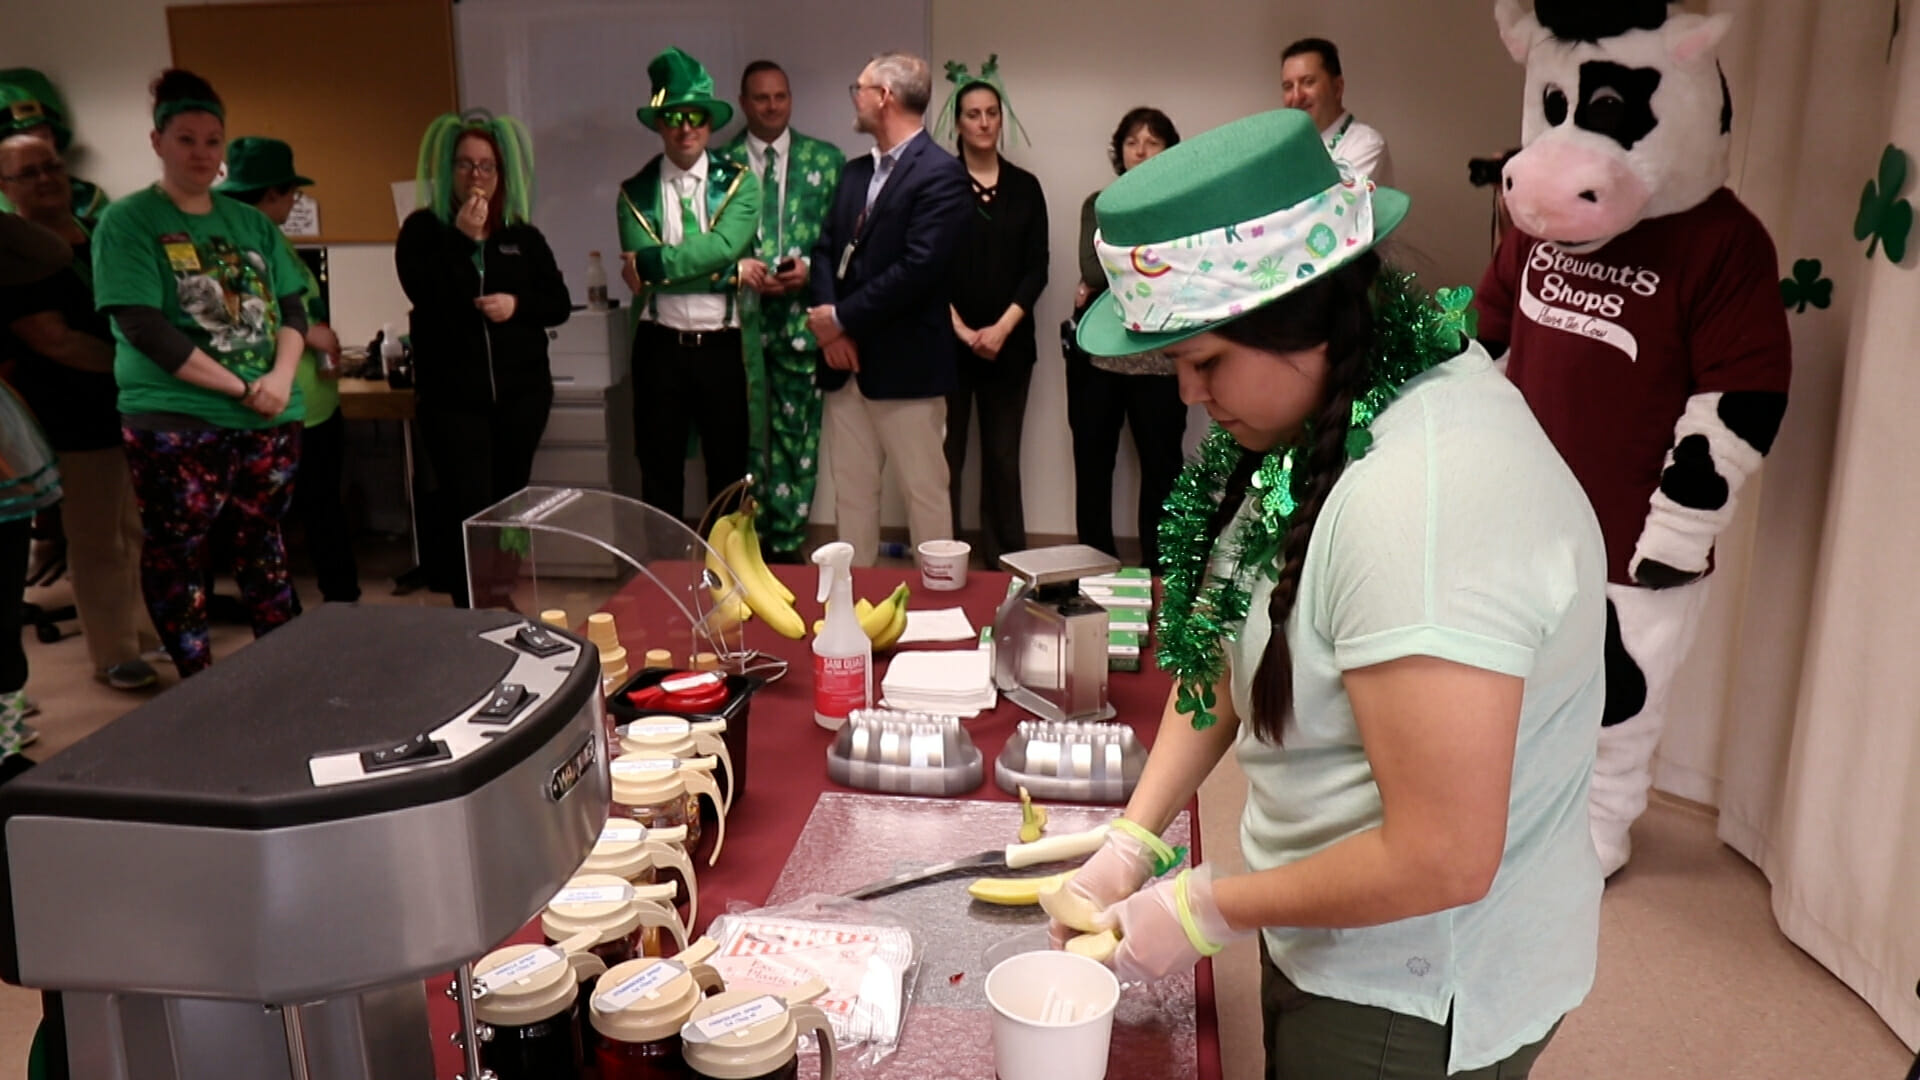 A partner slicing a banana to make a banana split at the dip off. People are in the background dressed up for st patricks day